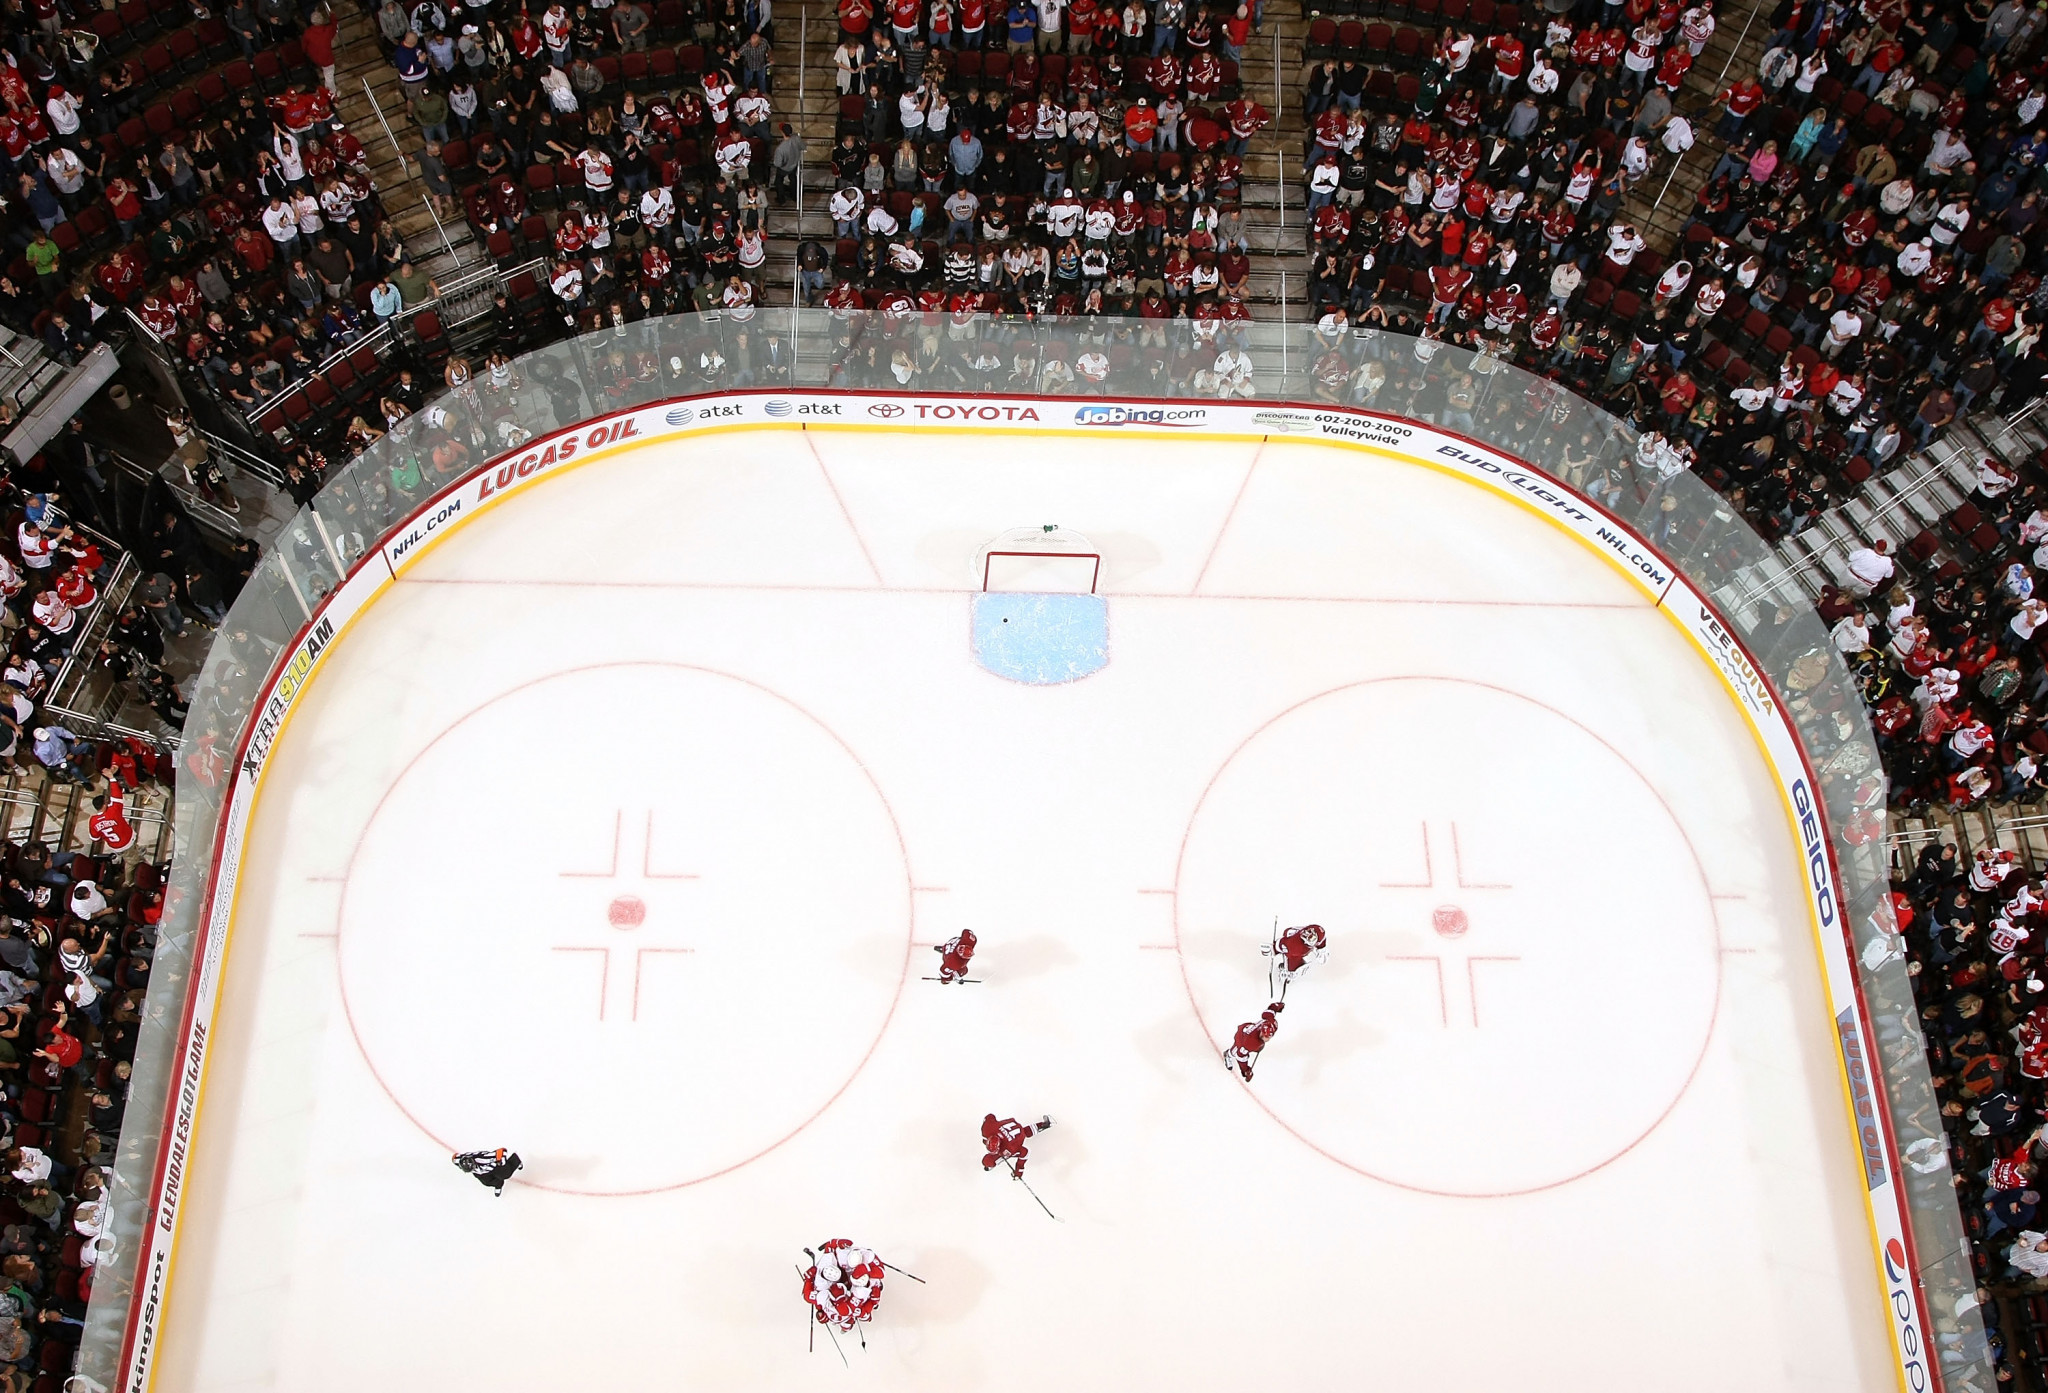 IIHF consider holding all future international events and Beijing 2022 tournament on NHL-sized rinks